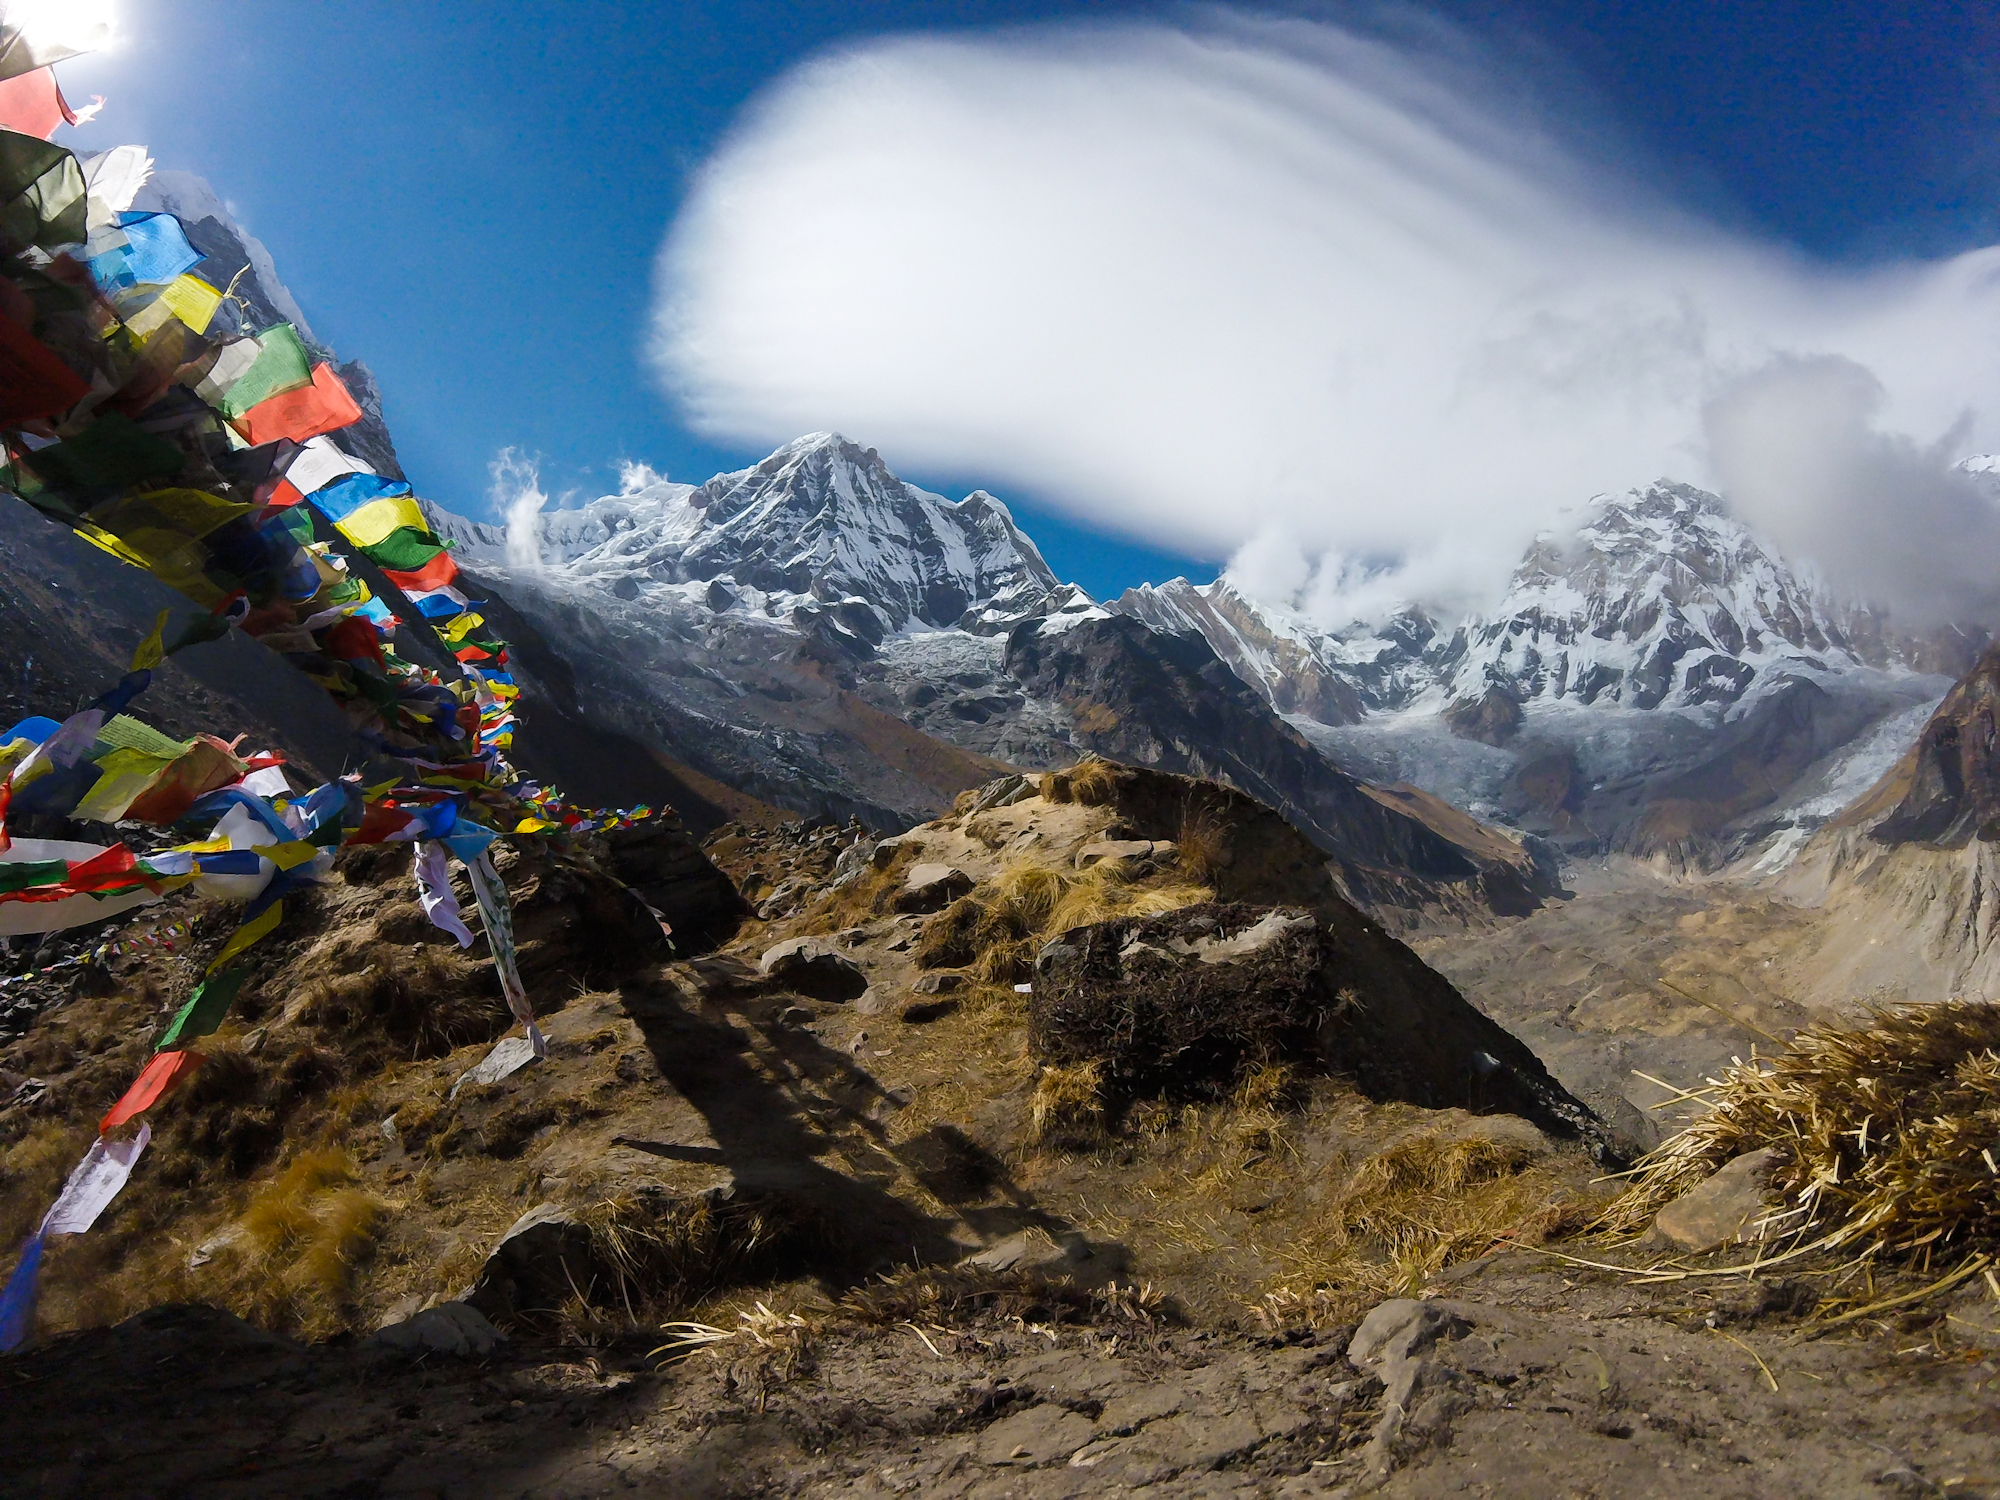 Nov 12.2, 2016   Pictured ahead is Annapurna South, the 101st highest mountain in the world. This place holds an obvious sentiment. Prayer flags fly, cracking in the wind. They are the colors of our elements; of sky, air, fire, water, and earth.